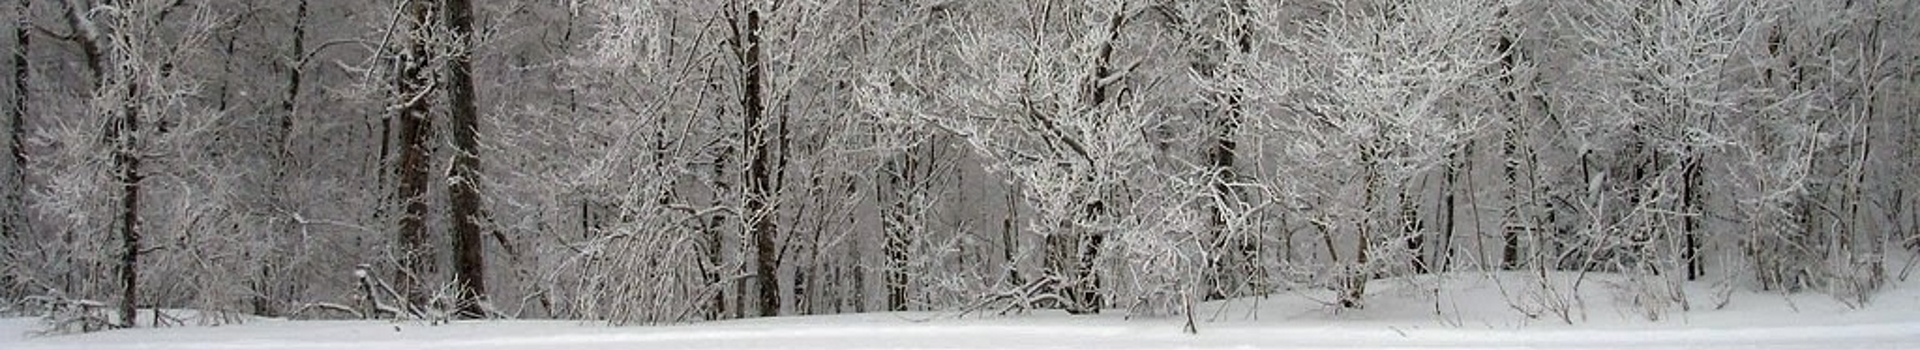 Snow covered trees and ground